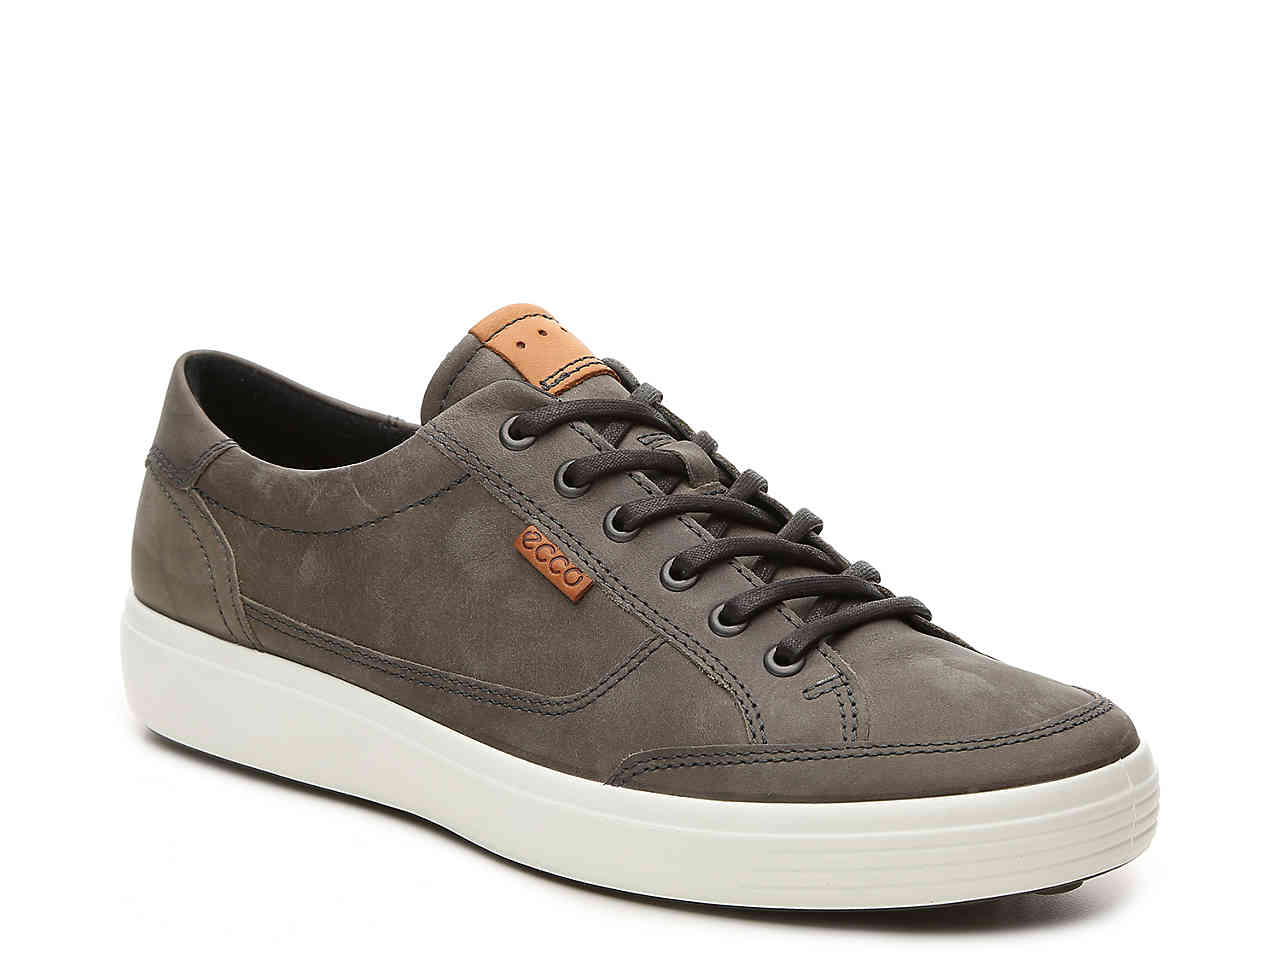 sneakers shoes soft retro sneaker psyeghj